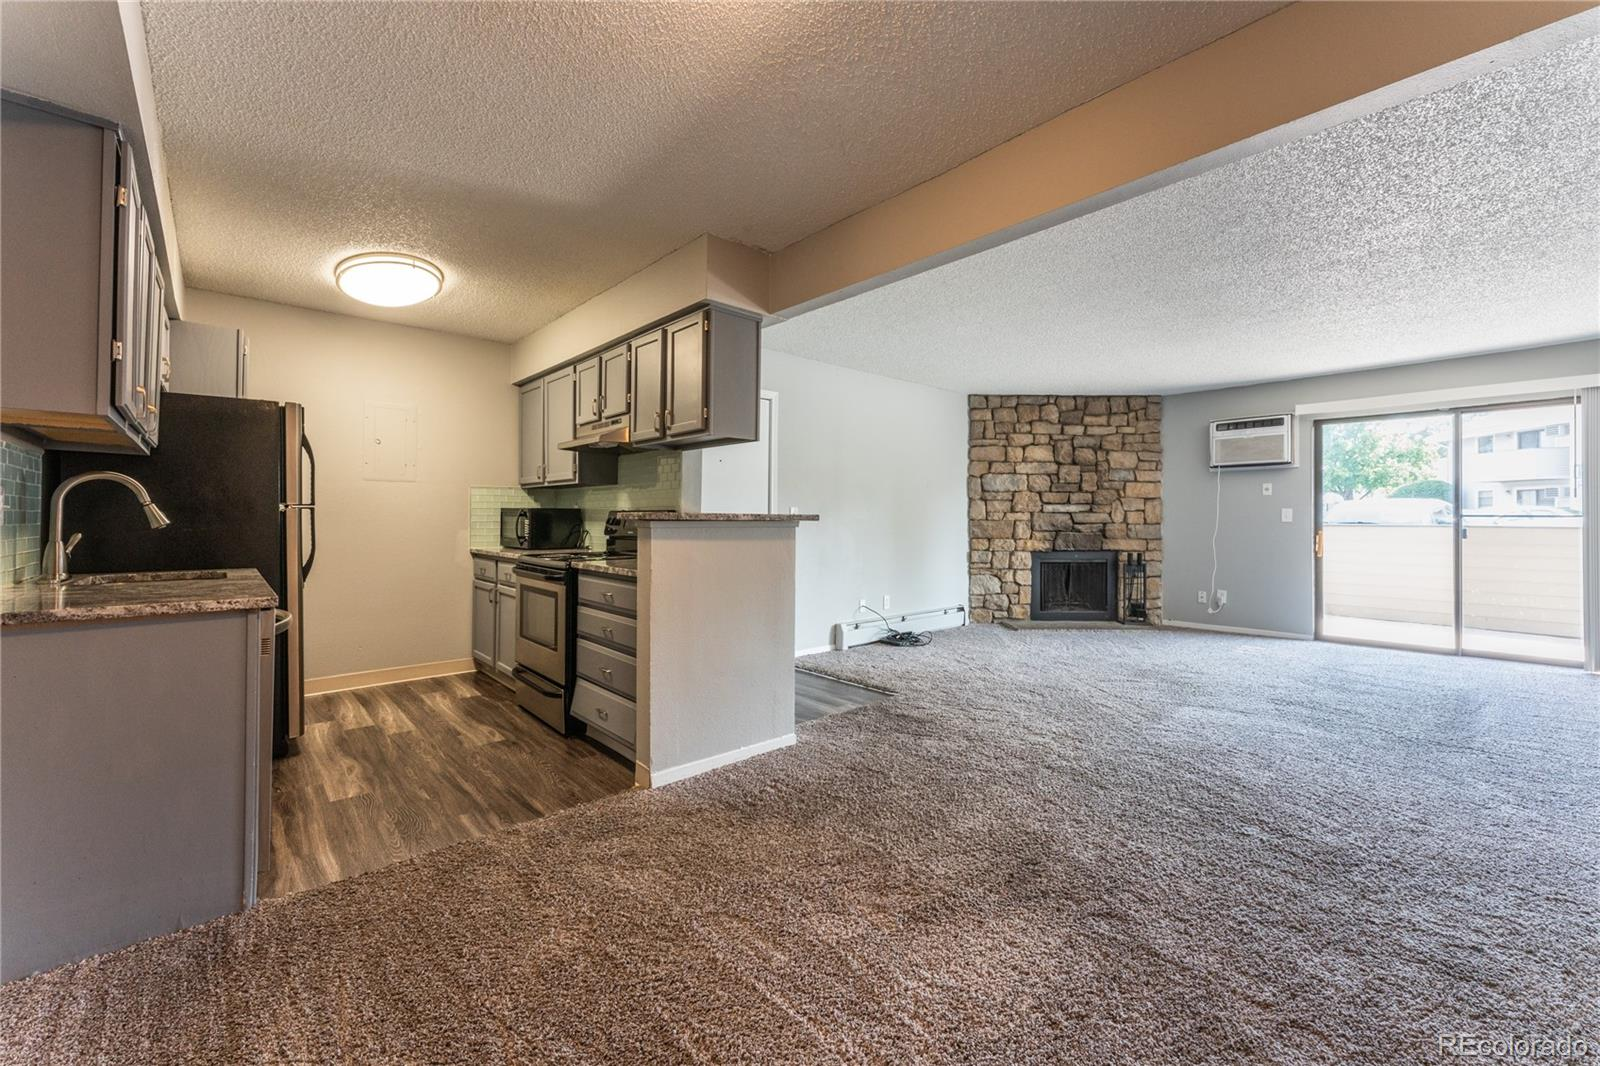 Charming and freshly updated ground-level 2 bedroom/2 full bath condo in Lowry Denver area, a beautiful gated community! Large Master Suite w/Walk-in Closet & Full Bath. Large cozy living room with wood burning fireplace. Kitchen includes granite countertops, tile back splash and stainless steel appliances. Laundry hookups in the home. **Brand New Windows** Enjoy the private covered patio and easy access to your unit via a deeded parking space! HOA includes water, heat, trash, 24hr security cameras, and basic cable too! There are numerous private amenities (pool, playground, clubhouse and parks). The proximity to restaurants, shopping and public transportation makes this Denver condo the ideal place to call home, set your private showing today!Property has been professionally cleaned, Please see supplements for all COVID-19 Compliance Docs that will need to be filled out and signed prior to showing the unit. Hand Sanitizer and  Masks available if needed.